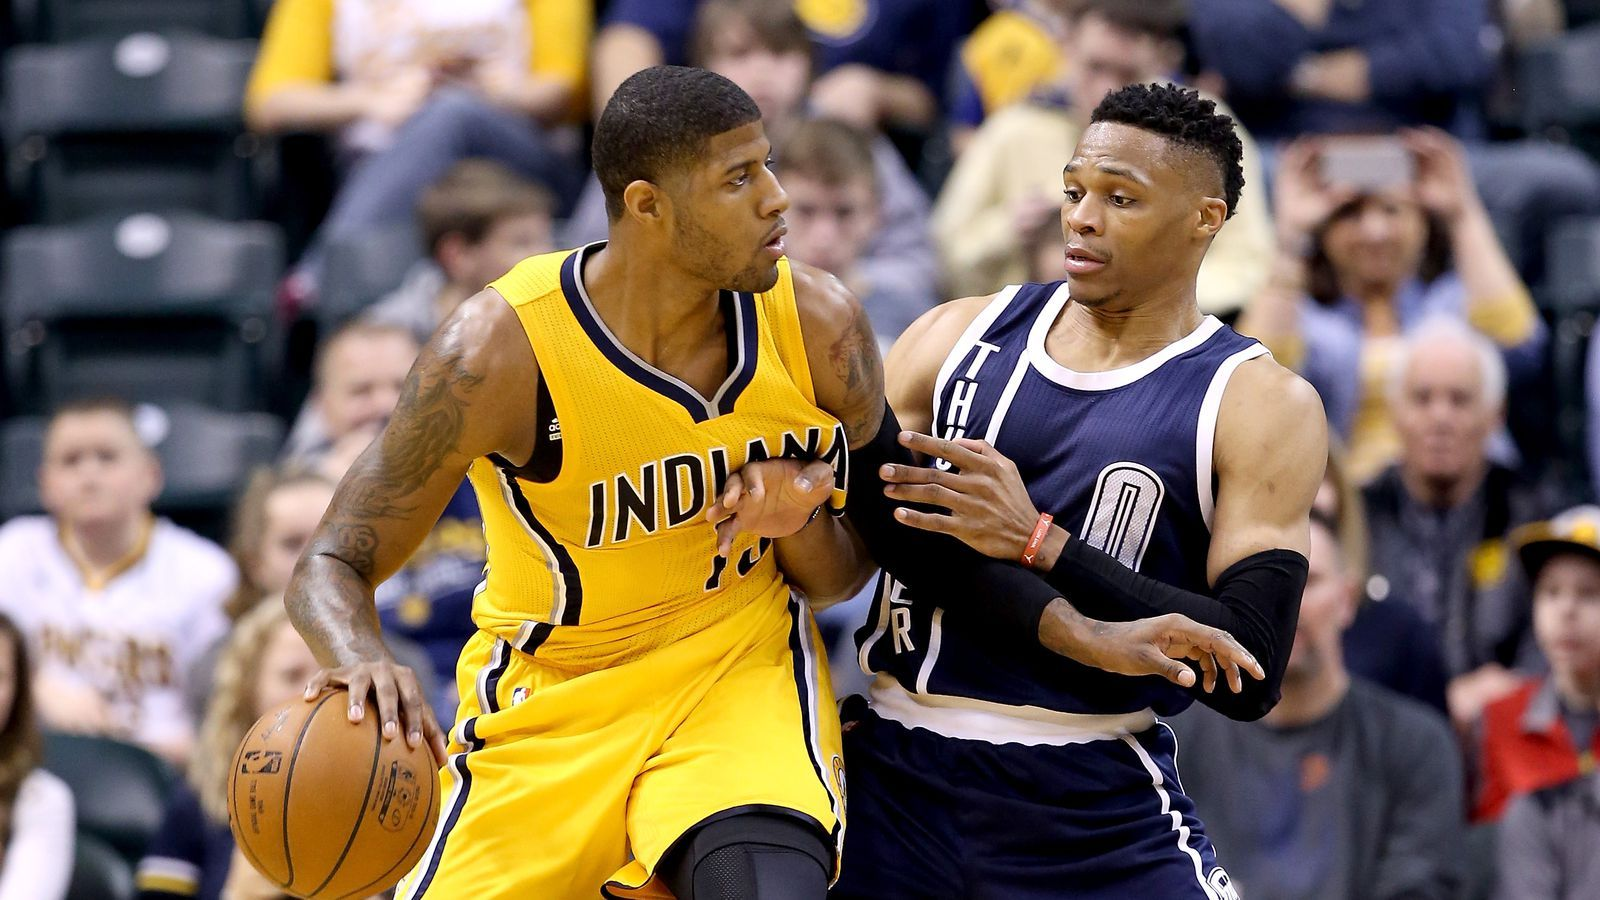 Paul George traded to Thunder in stunning deal, according to report - SB Nation